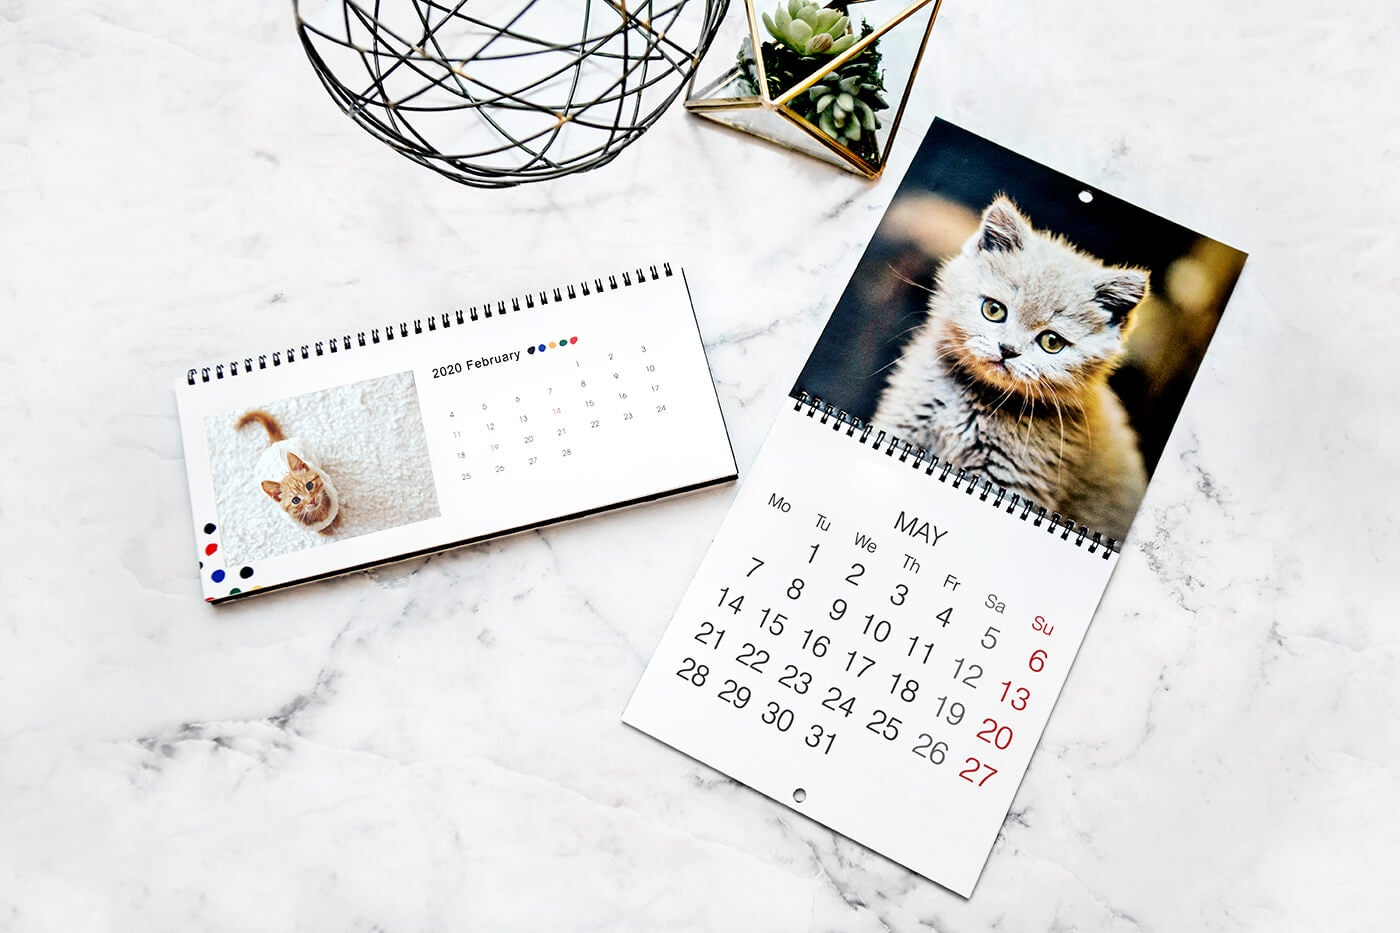 calendars of kittens printed by printique